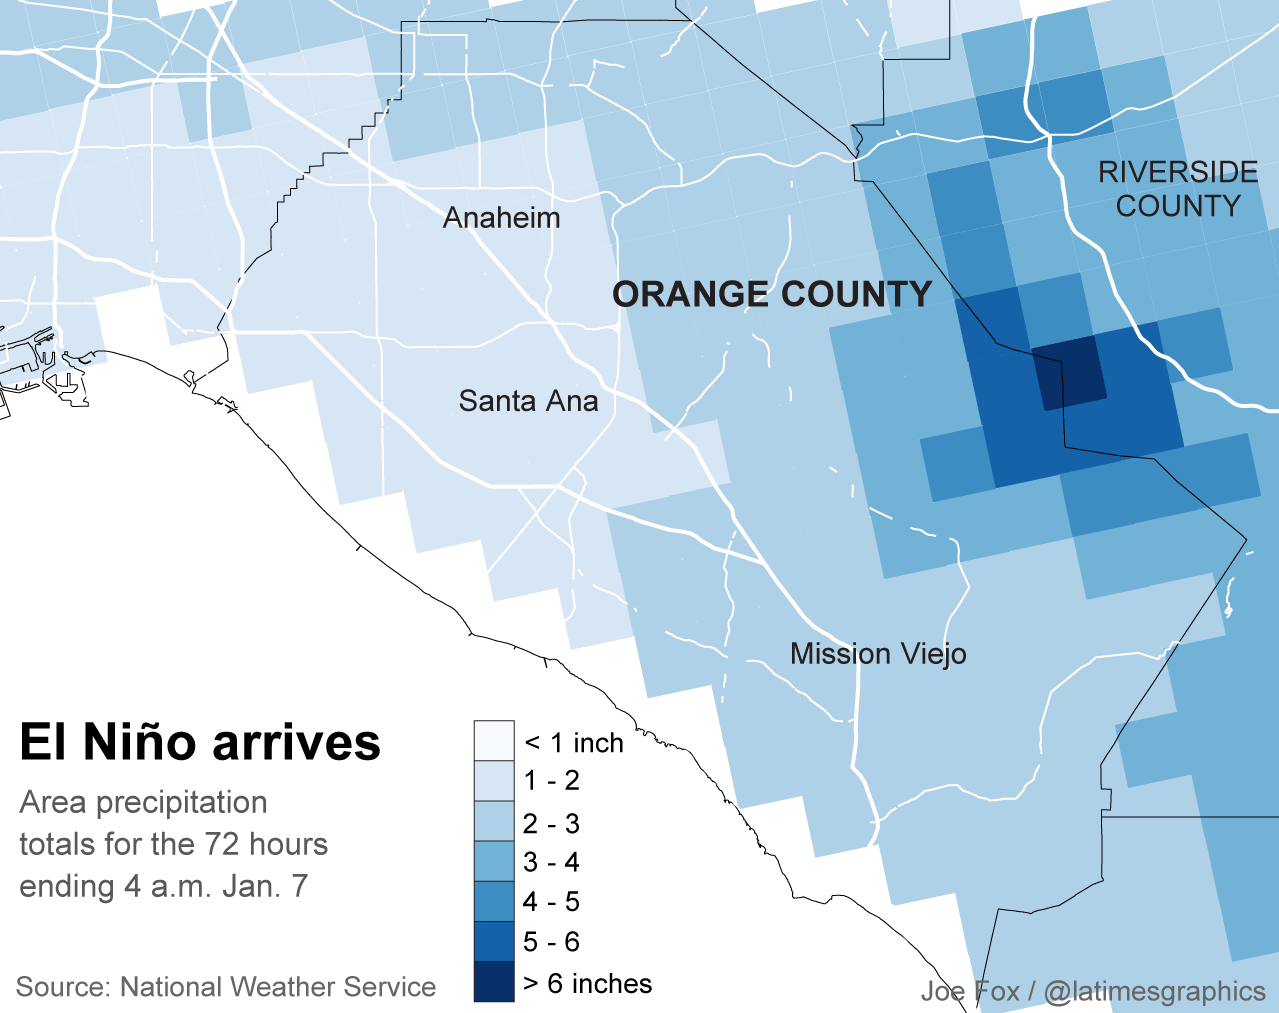 Rainfall in Orange County. (Los Angeles Times)